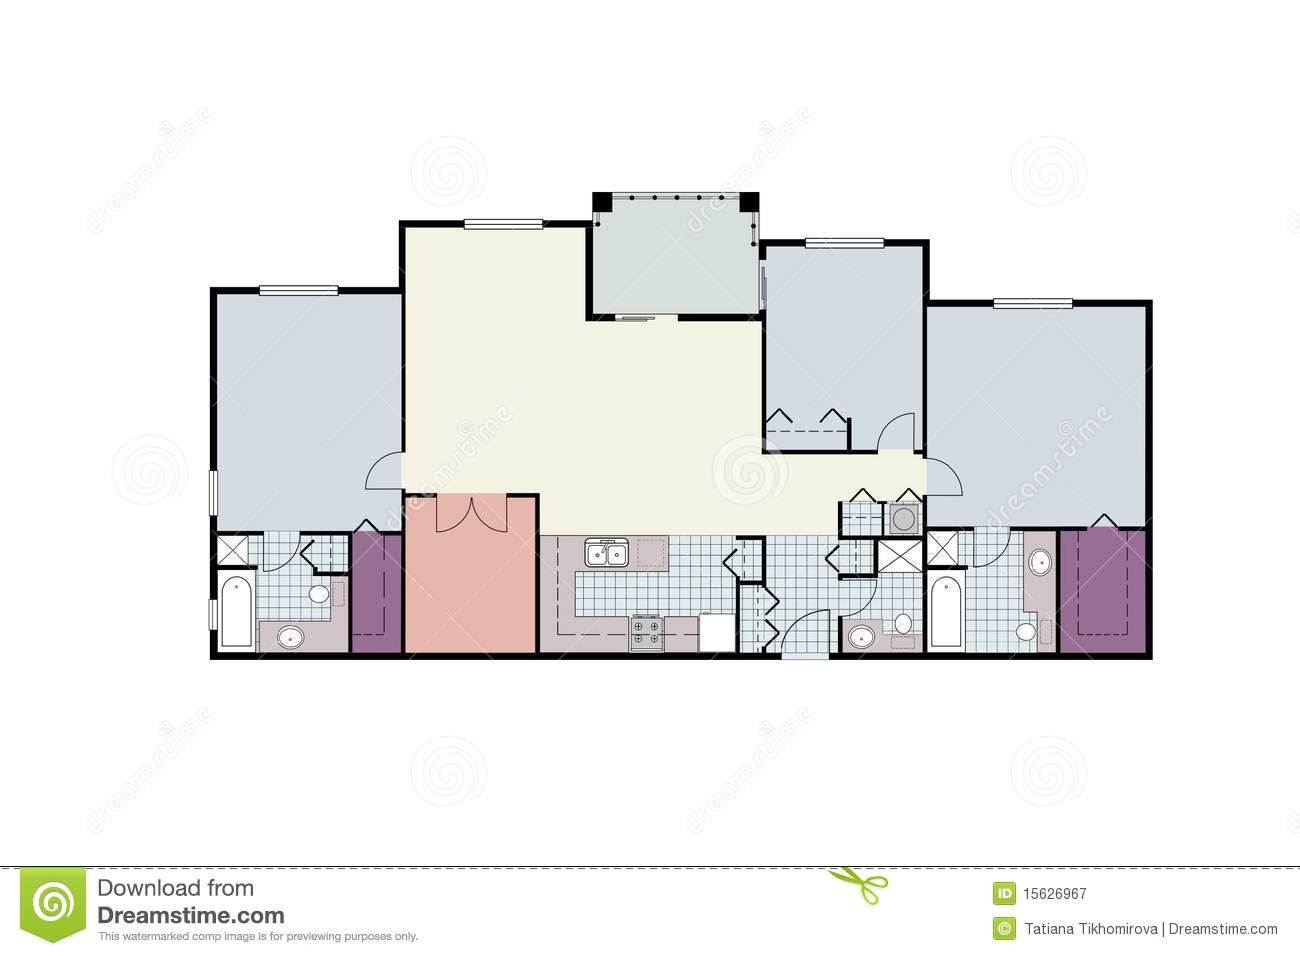 House plans and design architectural designs for condominiums for 3 bedroom architectural designs